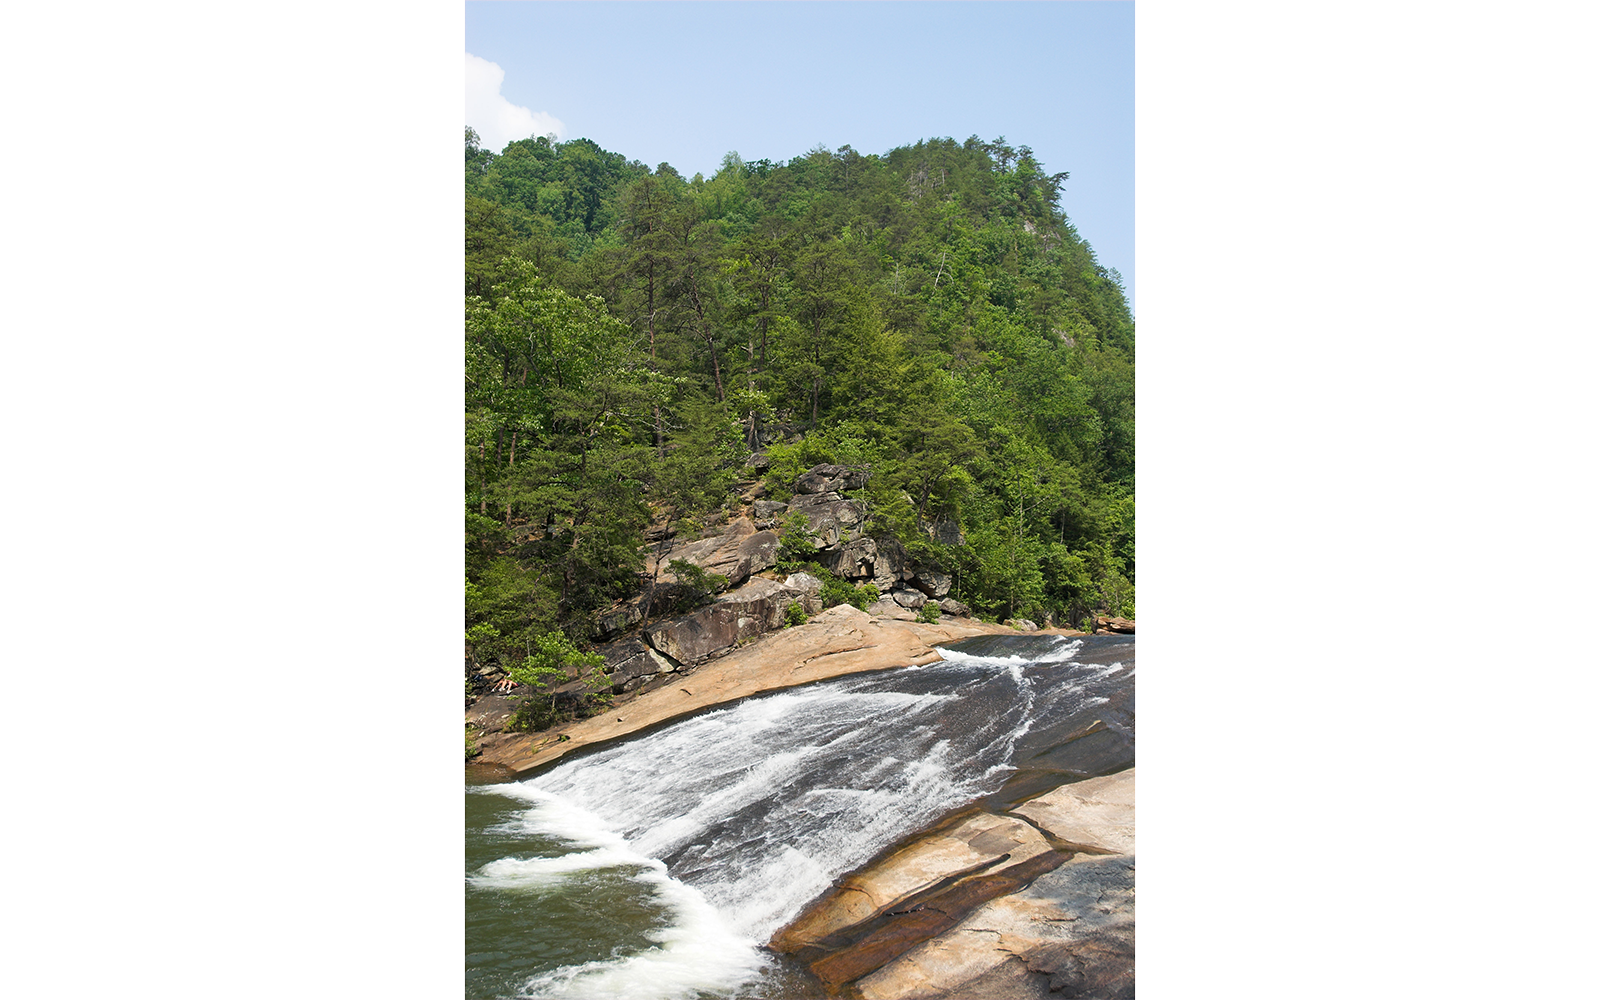 Bridal Veil Falls swimming hole in Tallulah Gorge State Park, GA